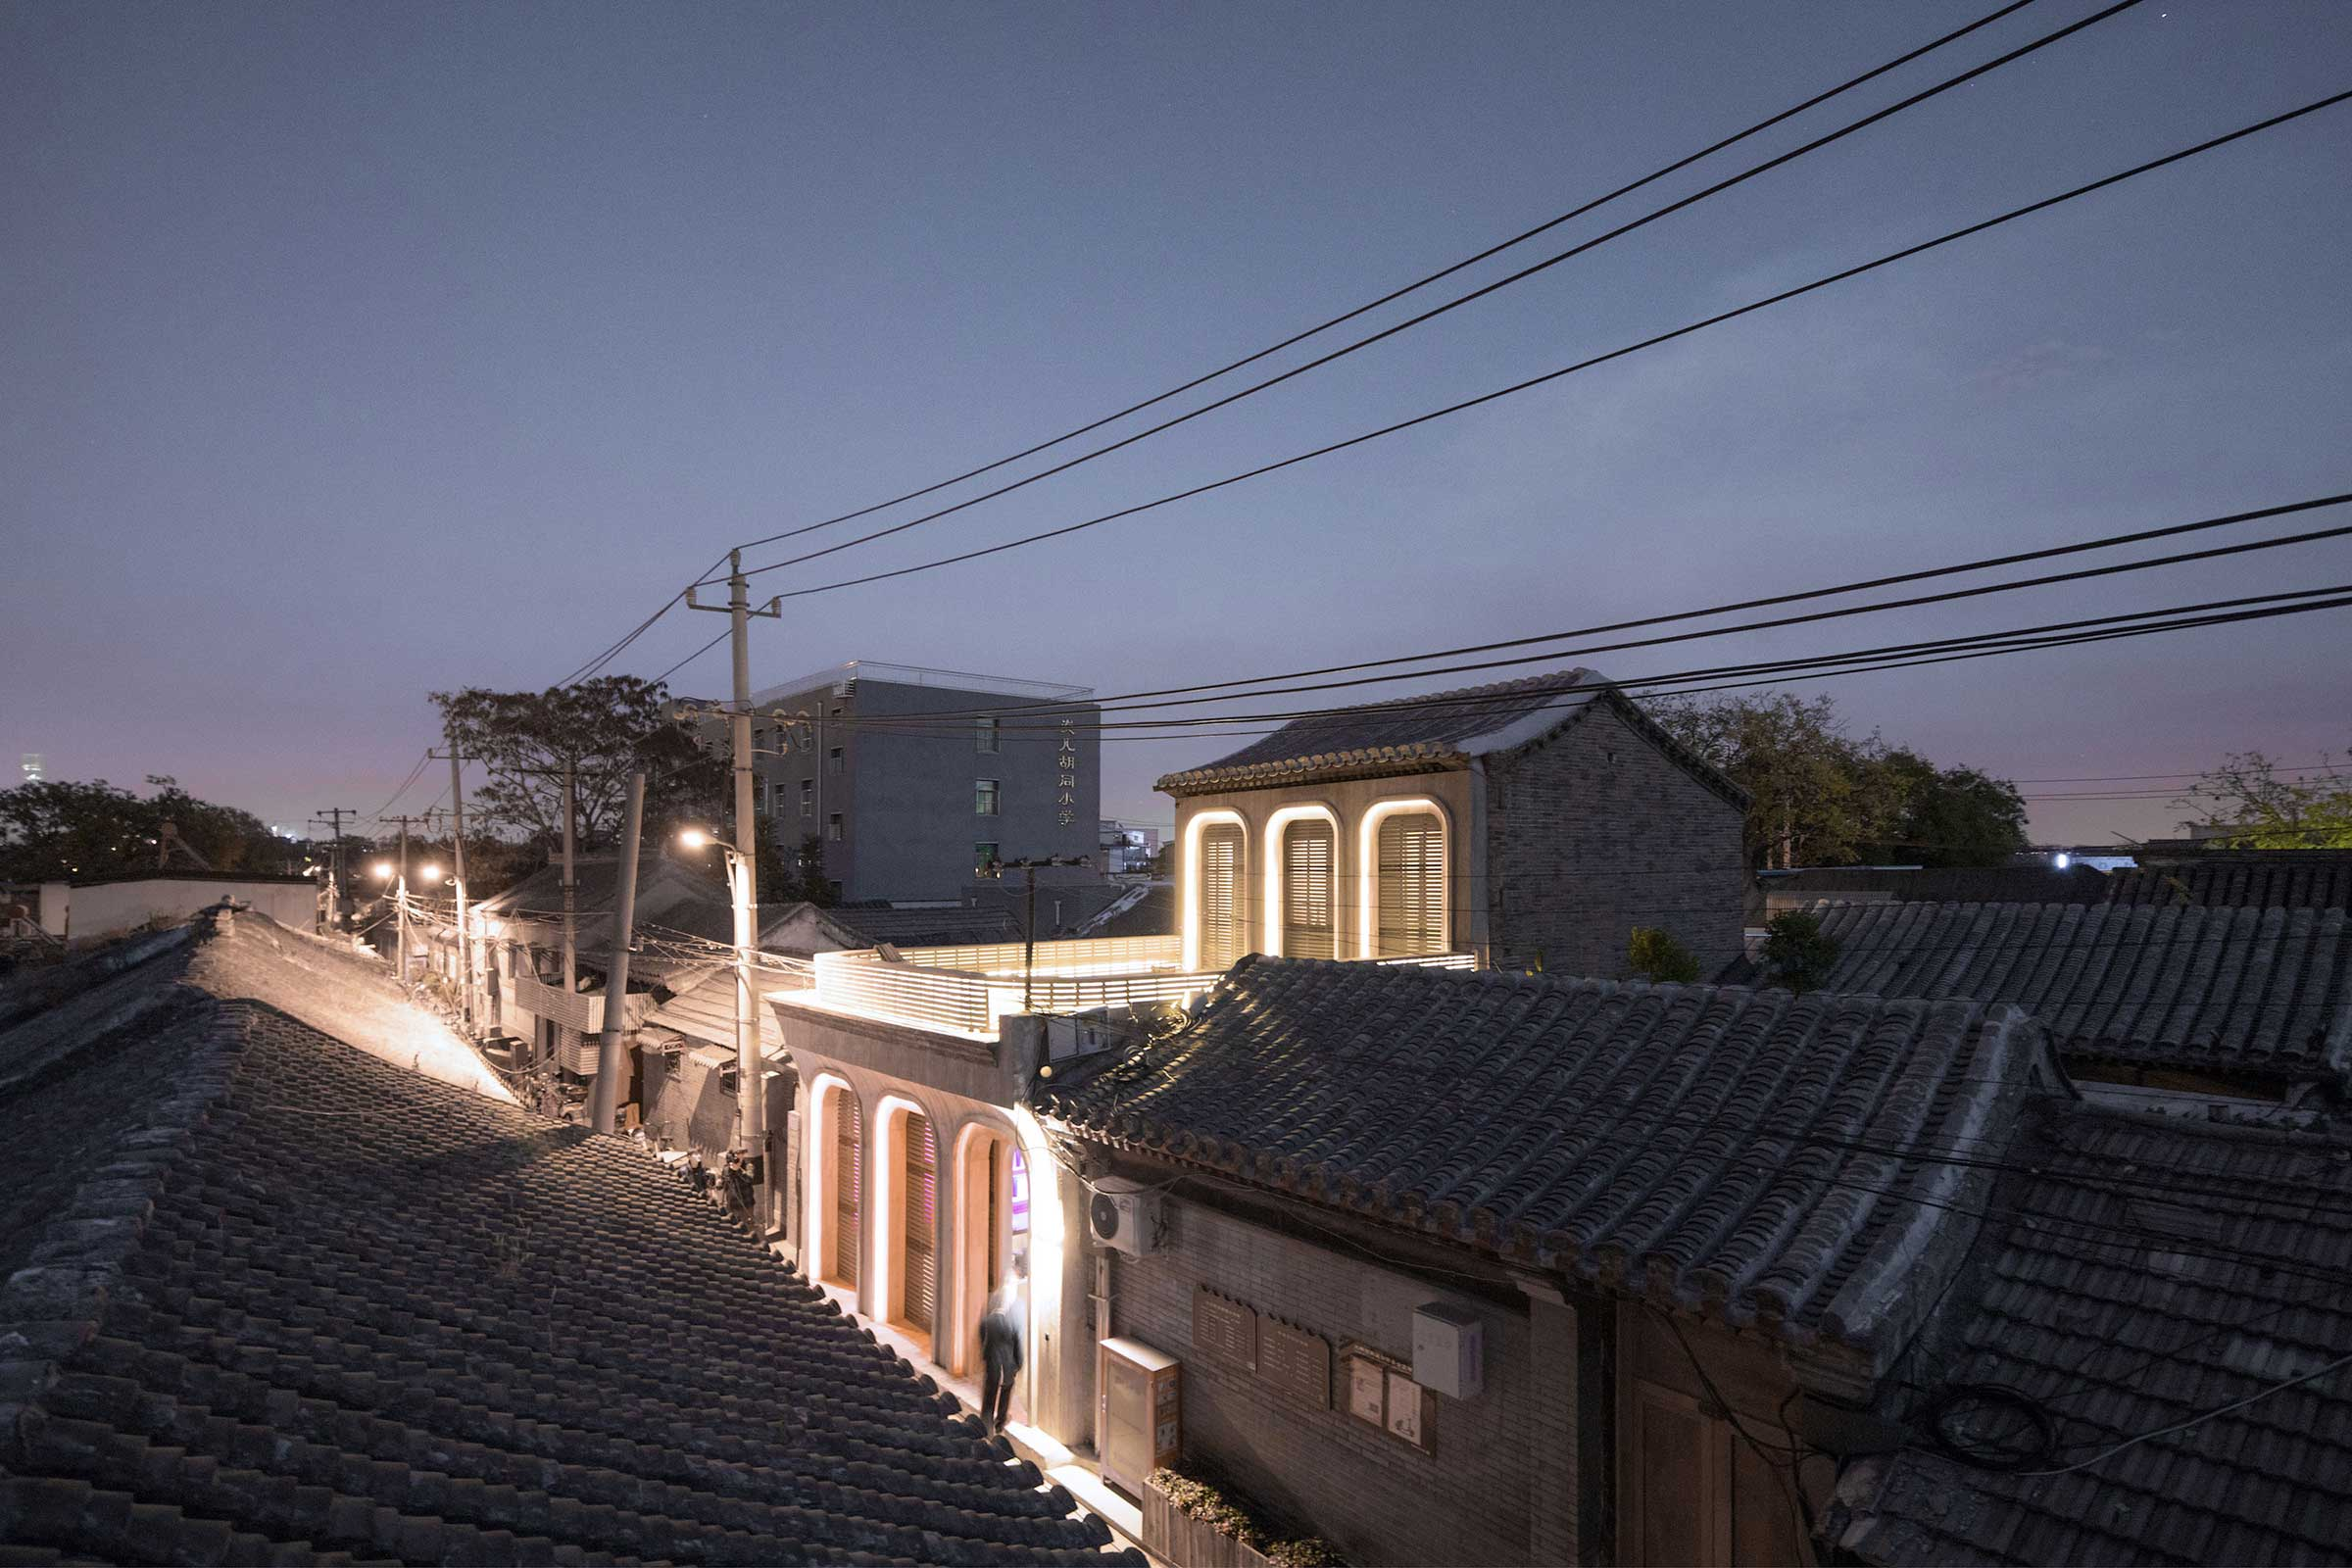 quad-house-ARCHISTRY-nolan-chao-02---the-facades-on-the-north-side.jpg